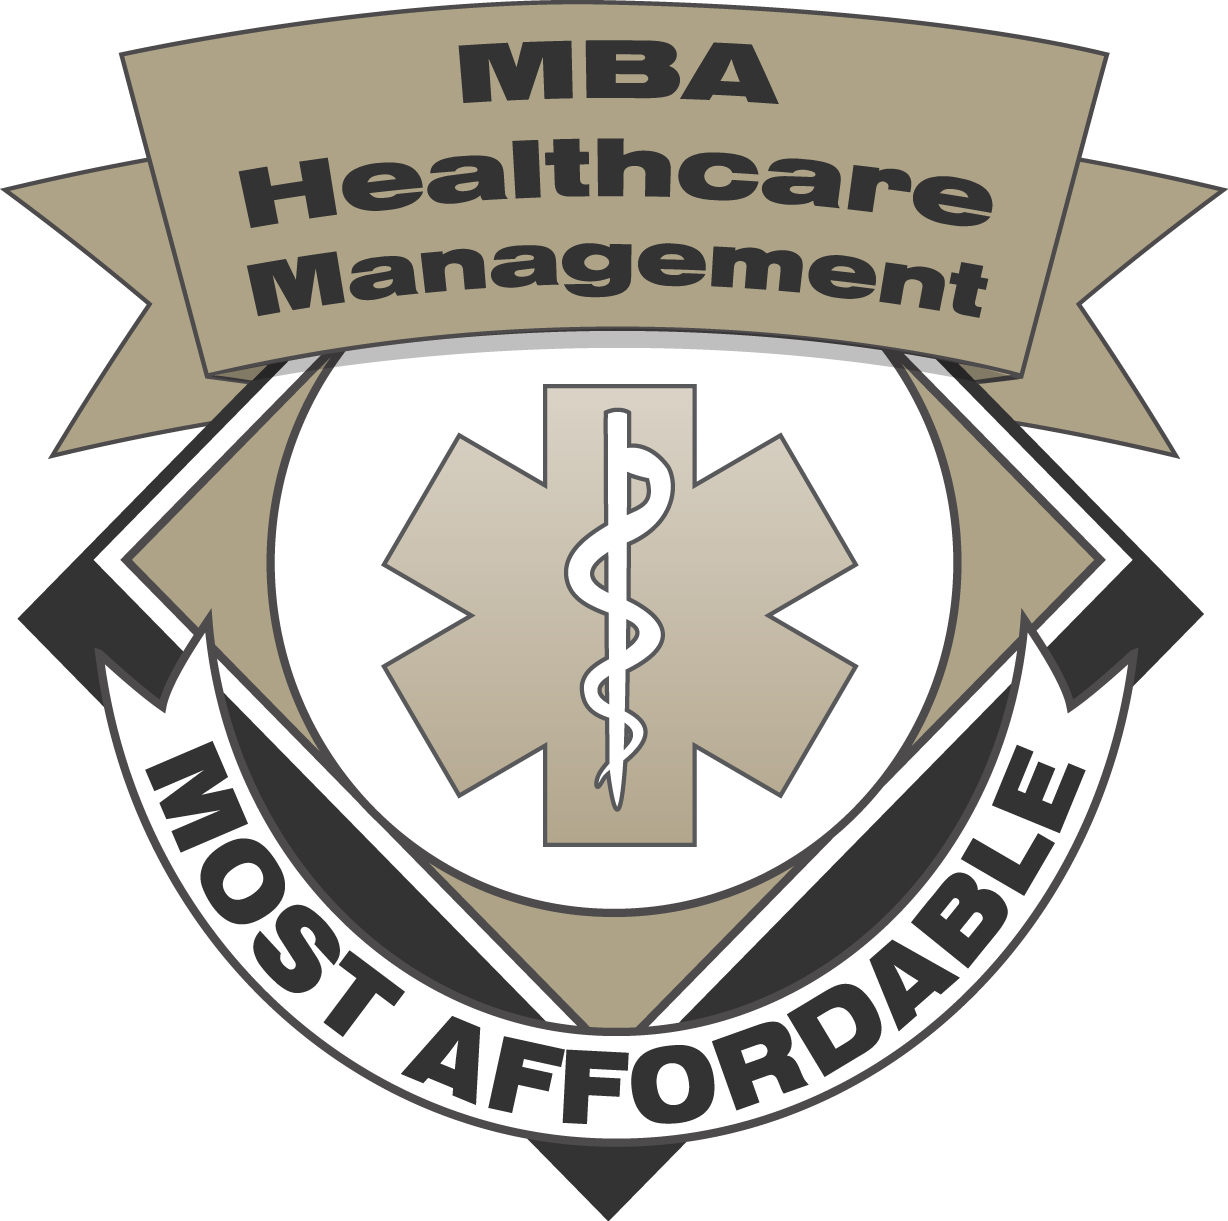 50 most affordable bachelors degrees in health informatics mba pursuing an affordable bachelors in health informatics can help students pave the way for a rewarding career in the medical field xflitez Choice Image